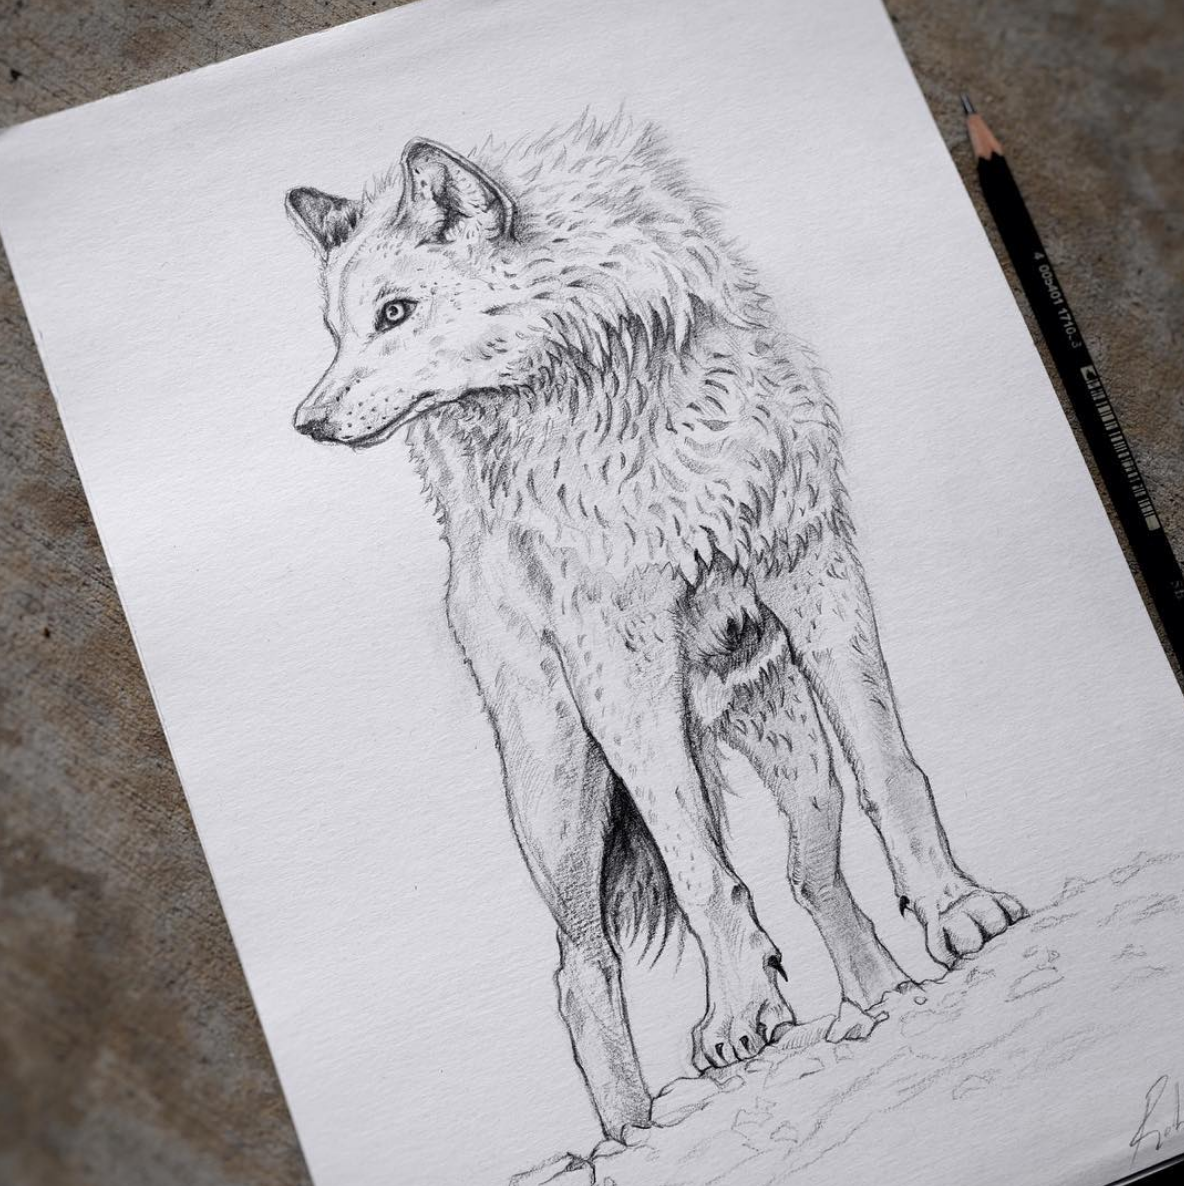 Above image; 'Call of The Wolf' - My pencil drawing on paper.